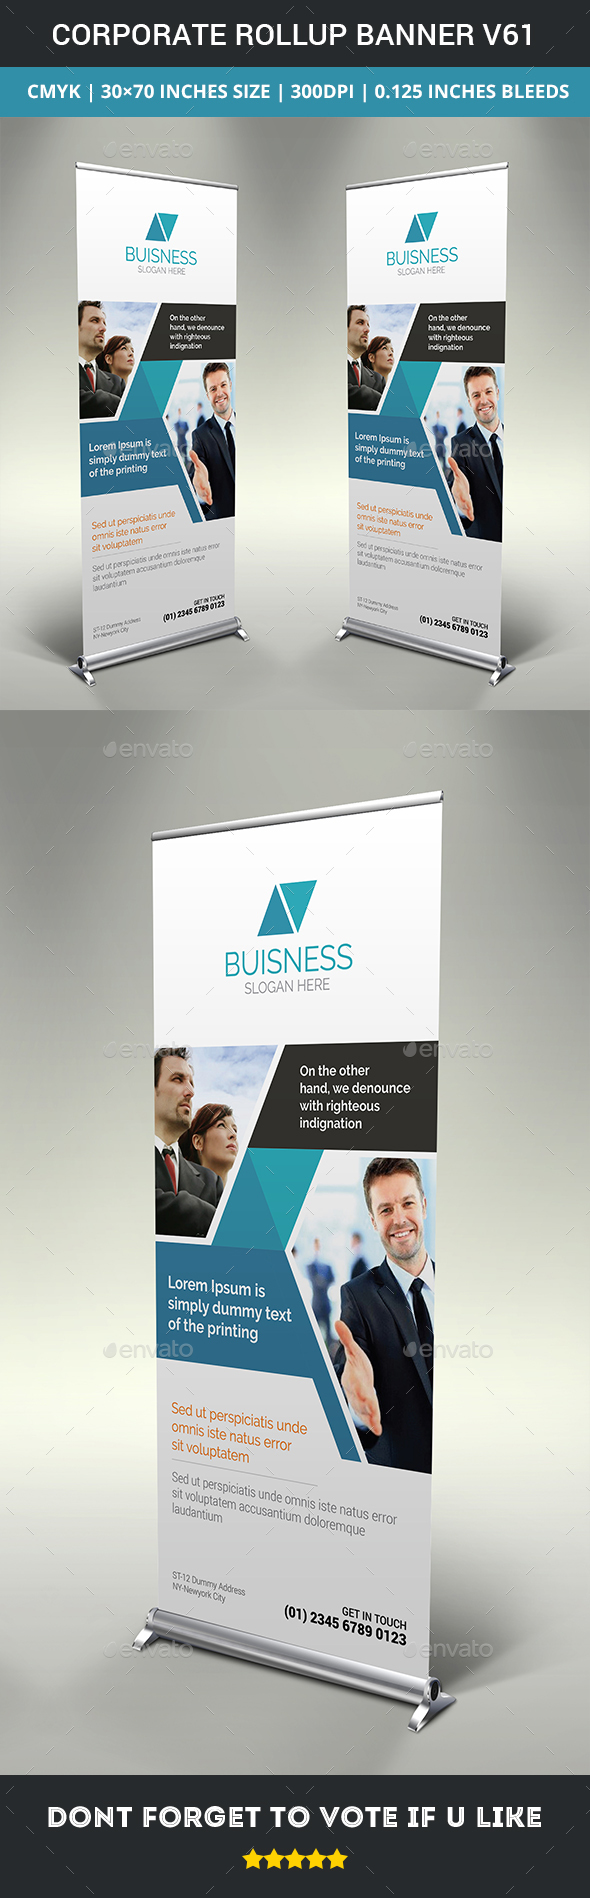 GraphicRiver Corporate rollup banner v61 20370705